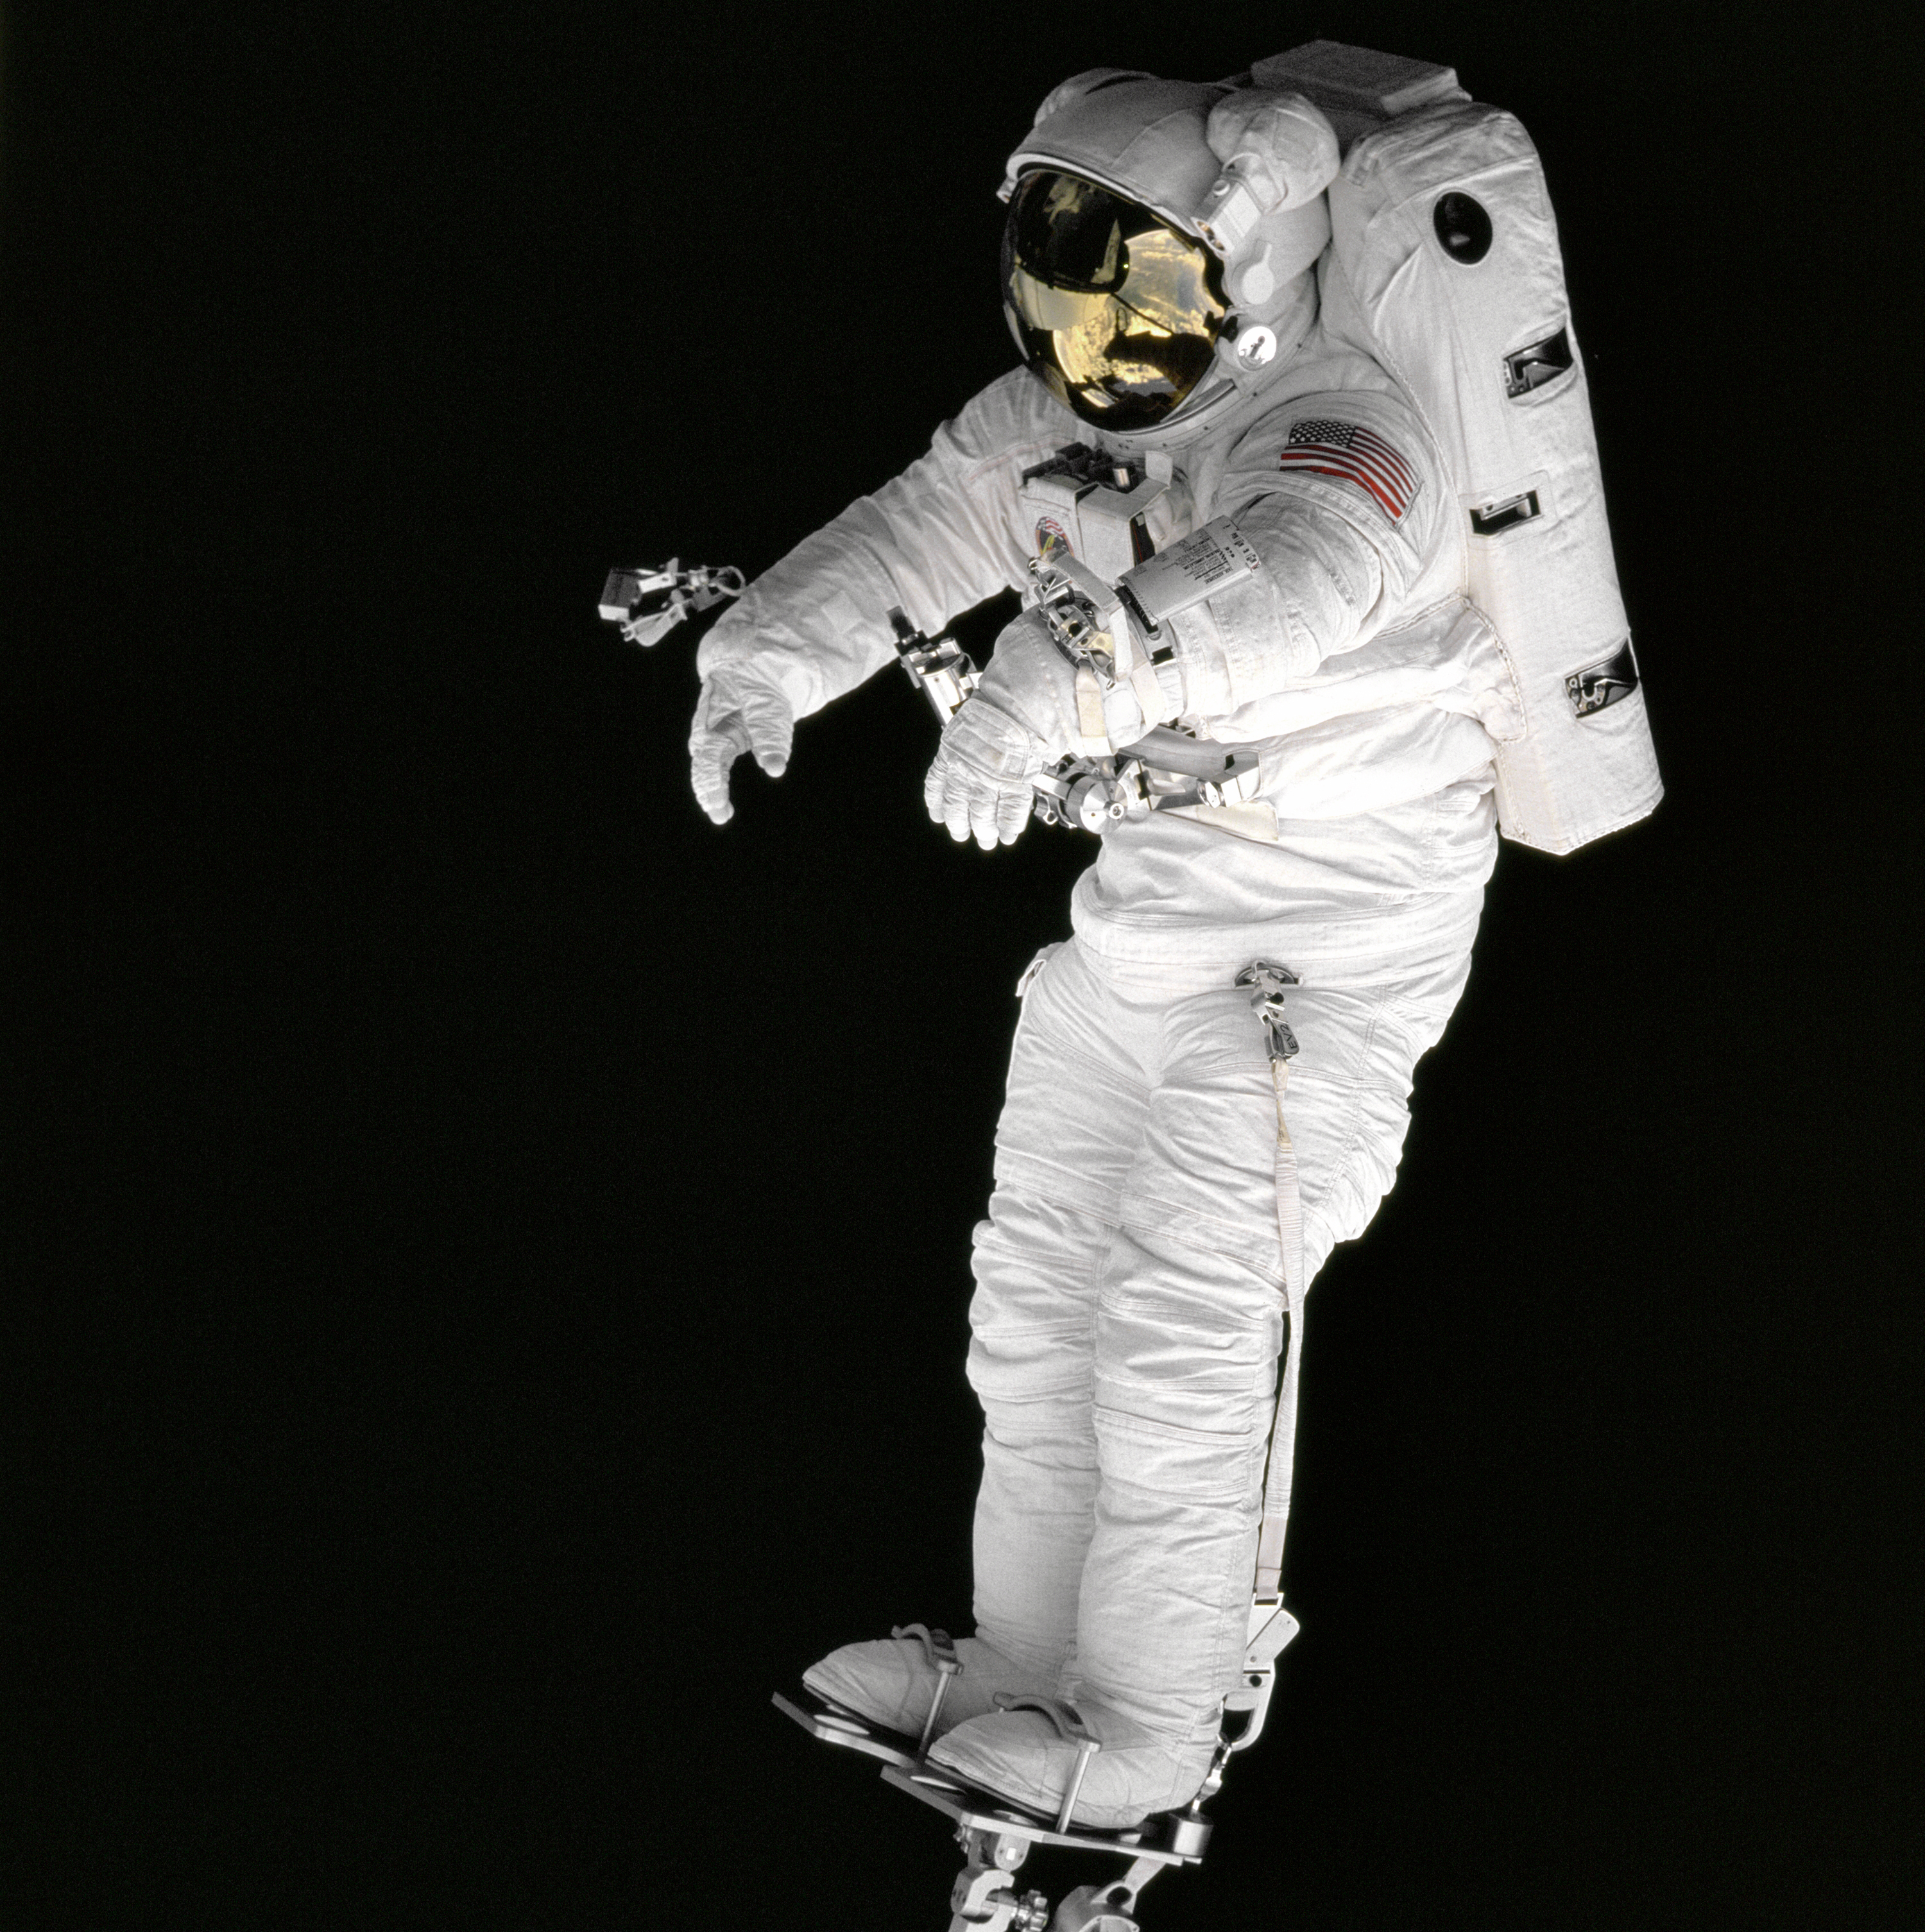 supply oxygen for astronauts - photo #17